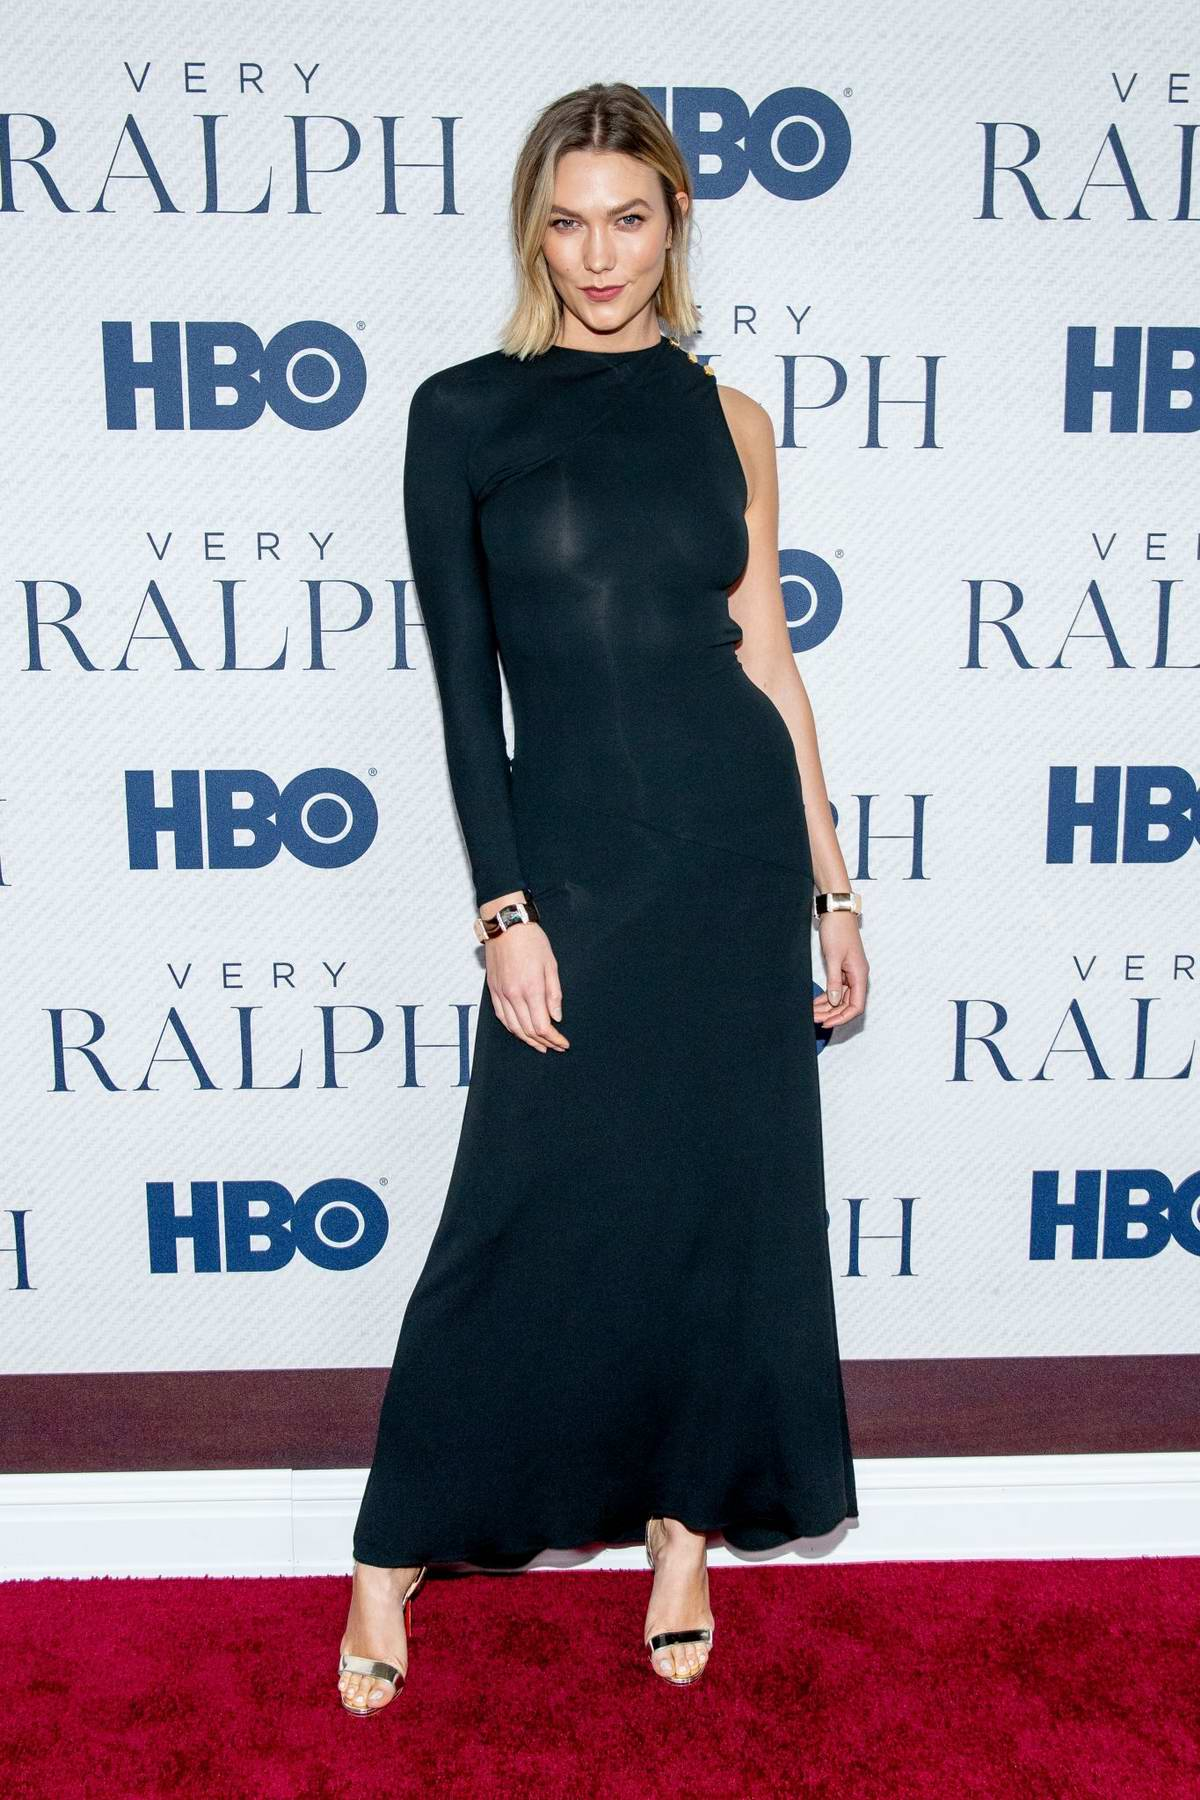 Karlie Kloss attends the World Premiere of HBO's 'Very Ralph' at the Metropolitan Museum of Art in New York City